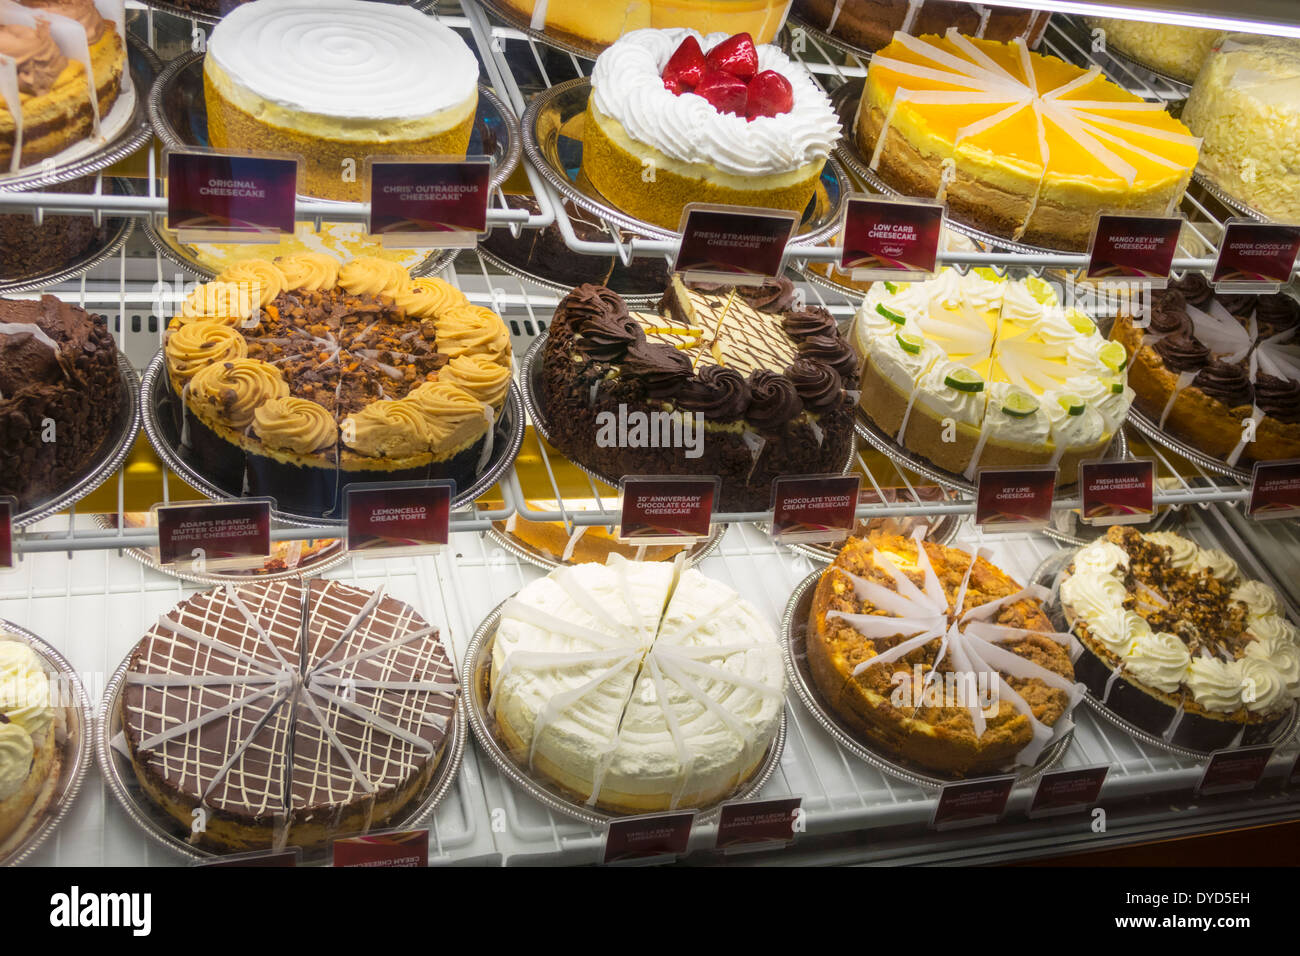 Cheesecake Factory Cakes For Sale